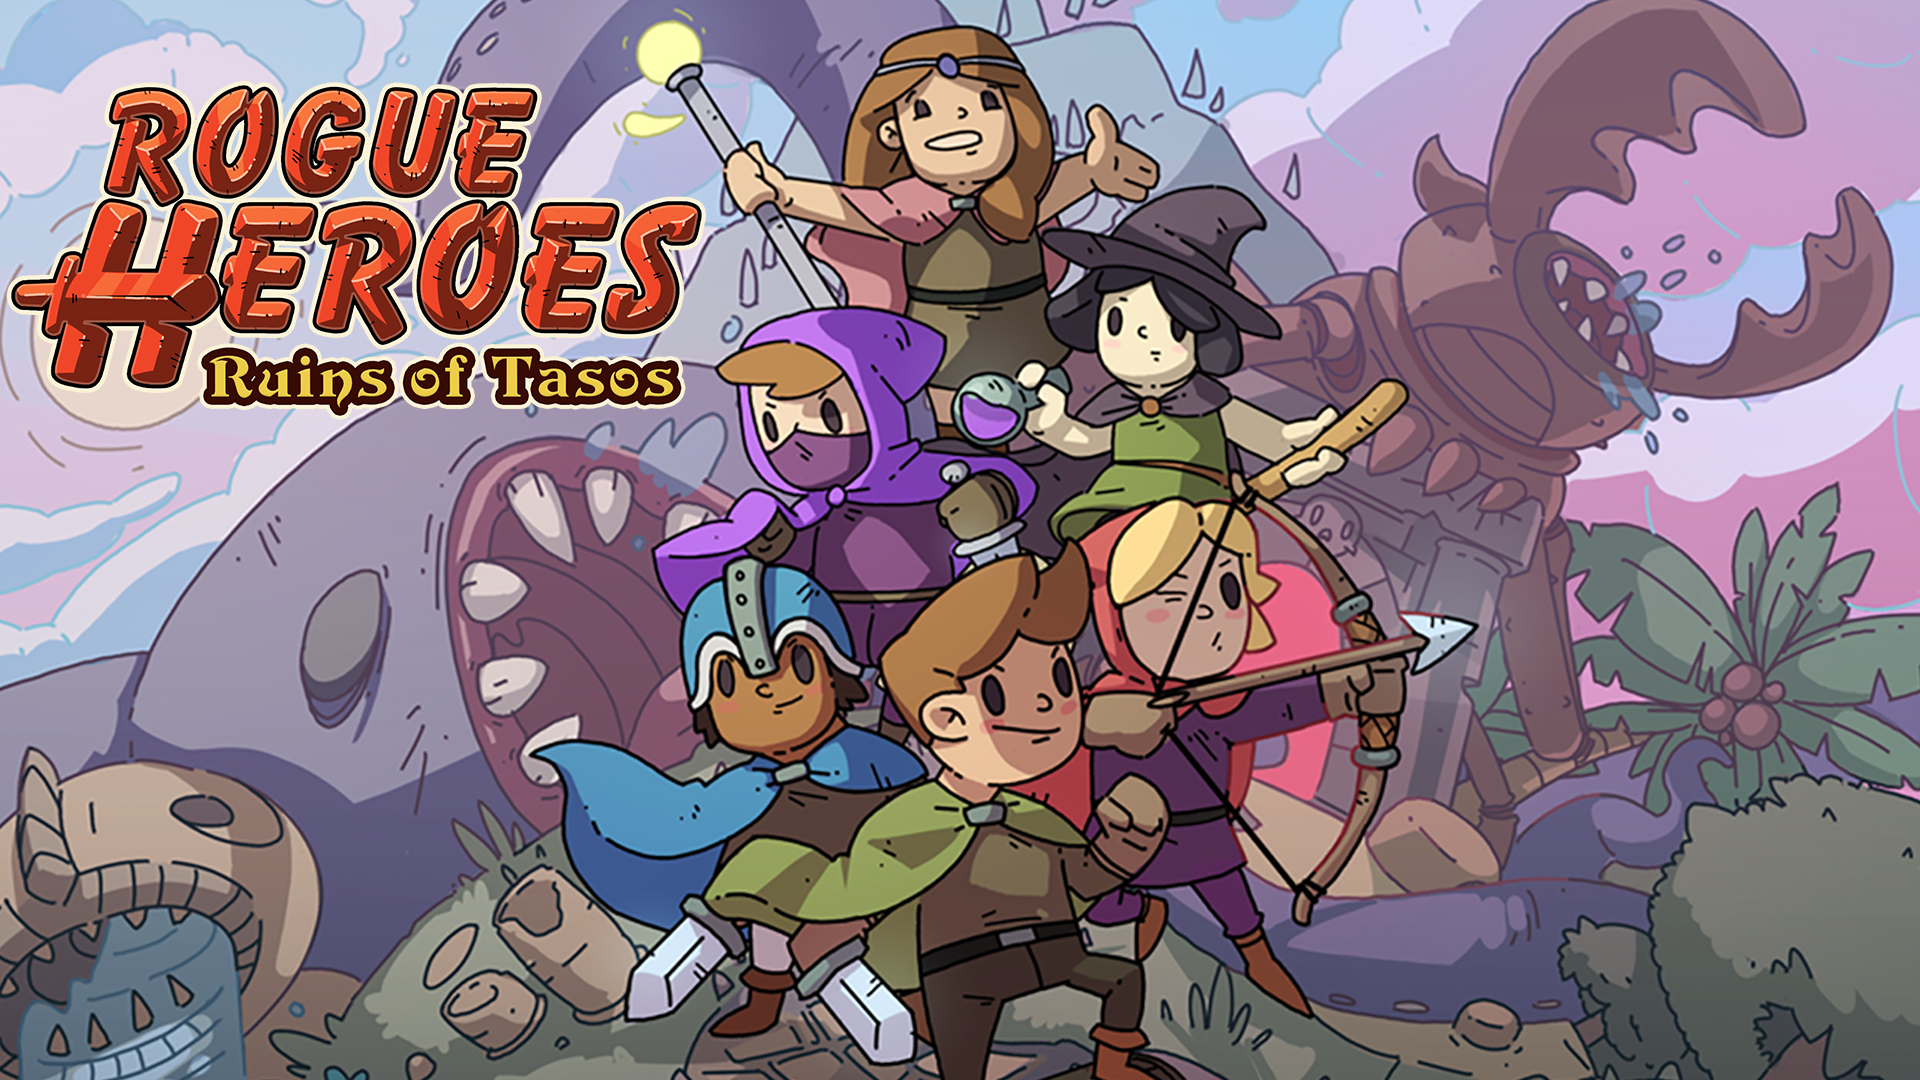 Rogue Heroes: Ruins of Tasos – Nintendo Switch Announcement!